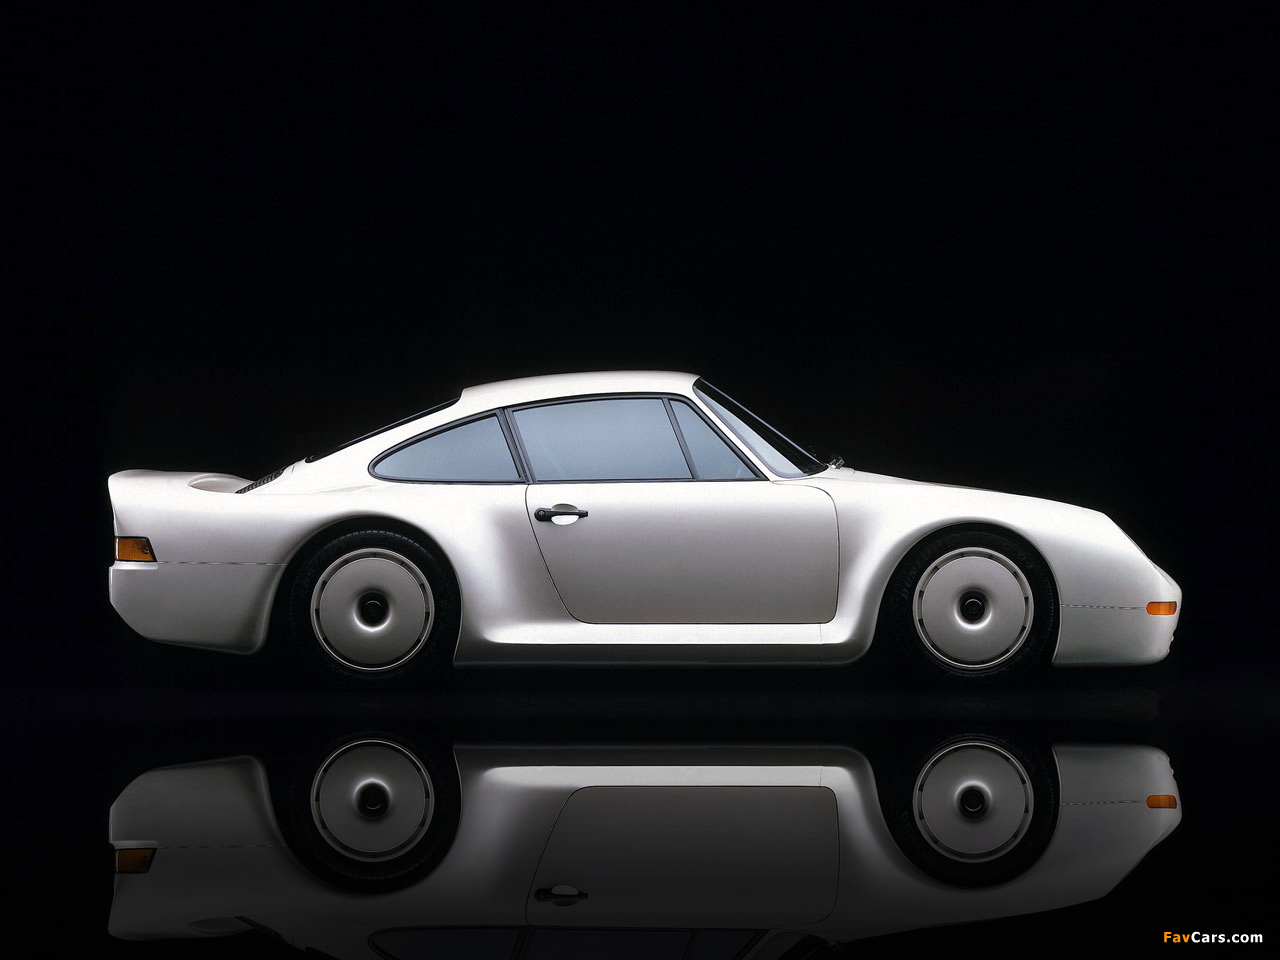 Wallpapers Of Porsche 959 Gruppe B Prototype 1983 1280x960